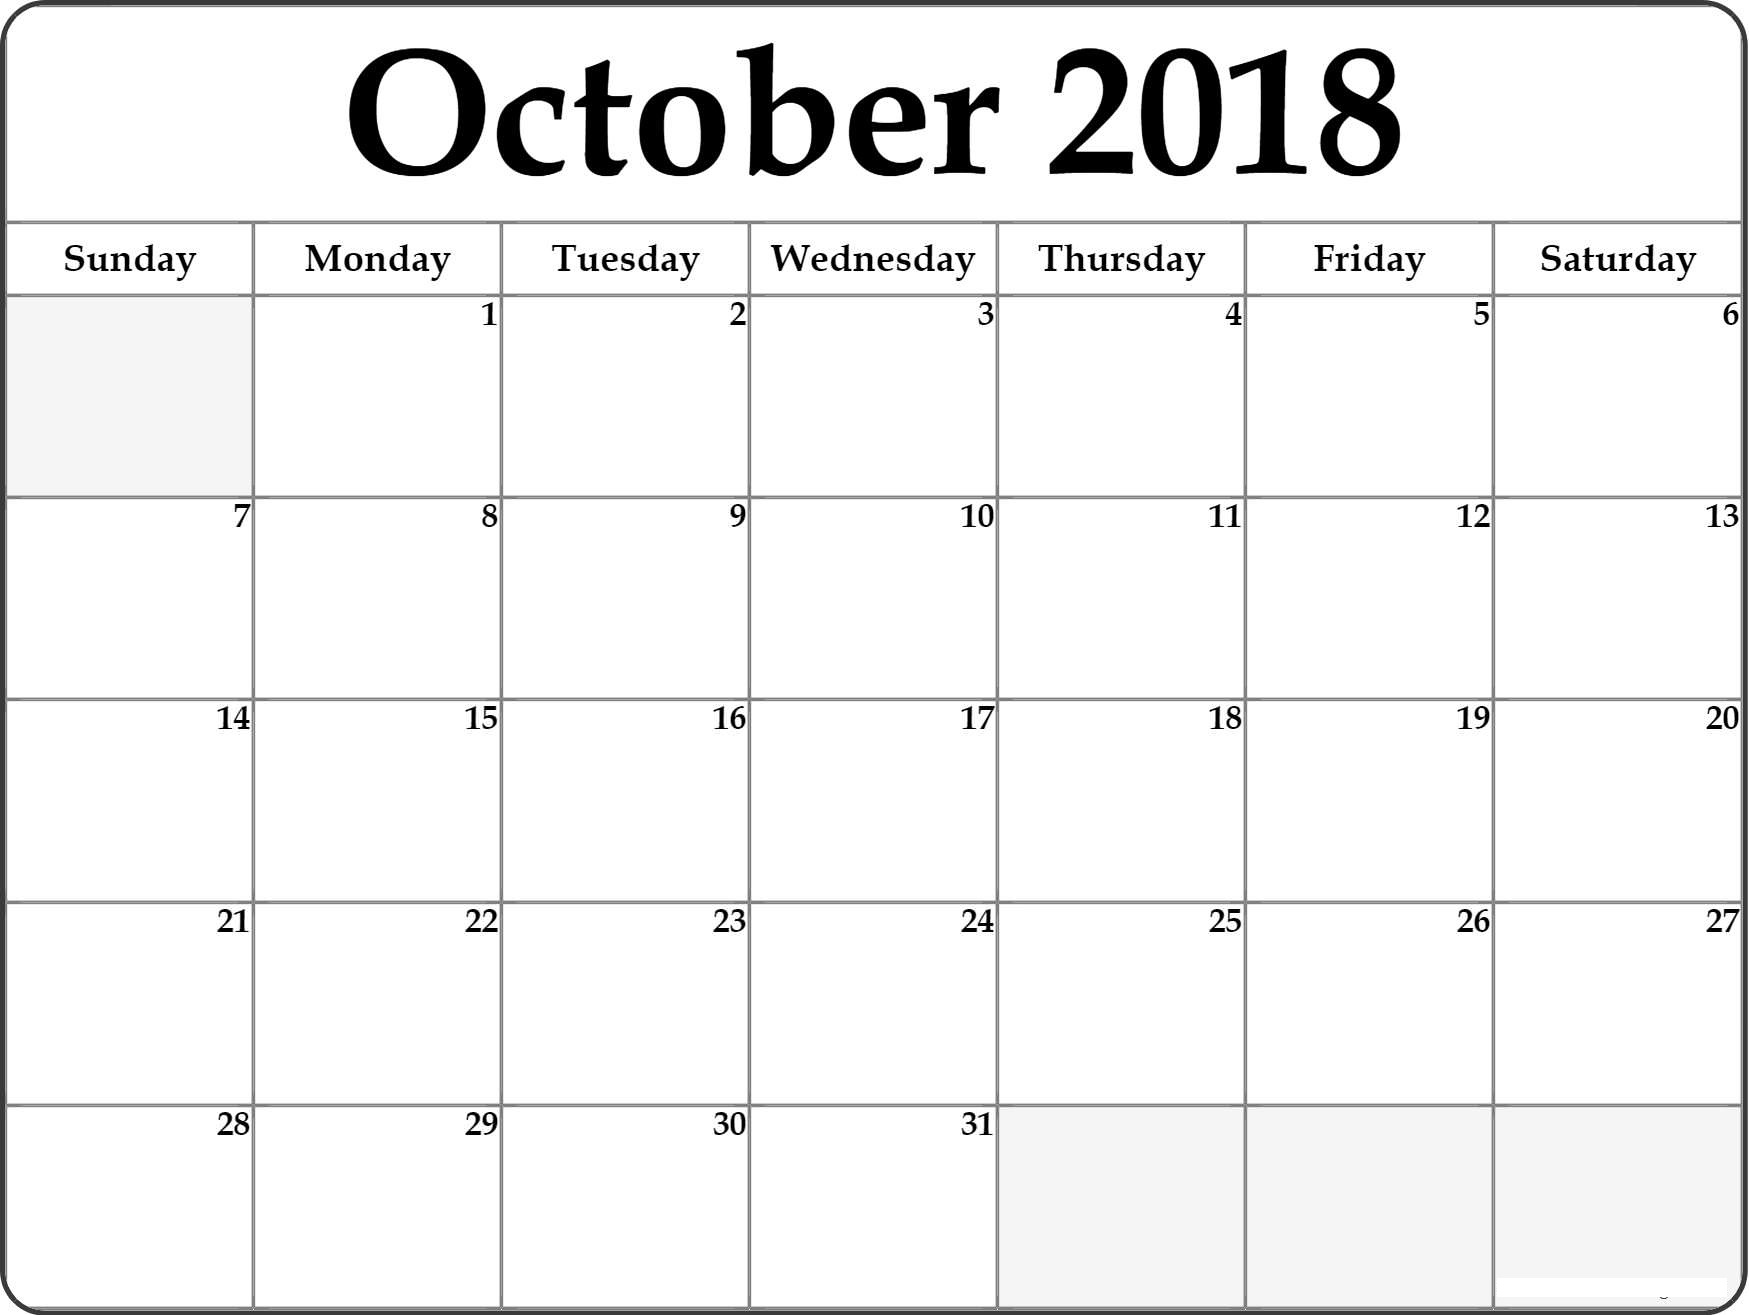 October 2018 Calendar Template Printable {Download ...